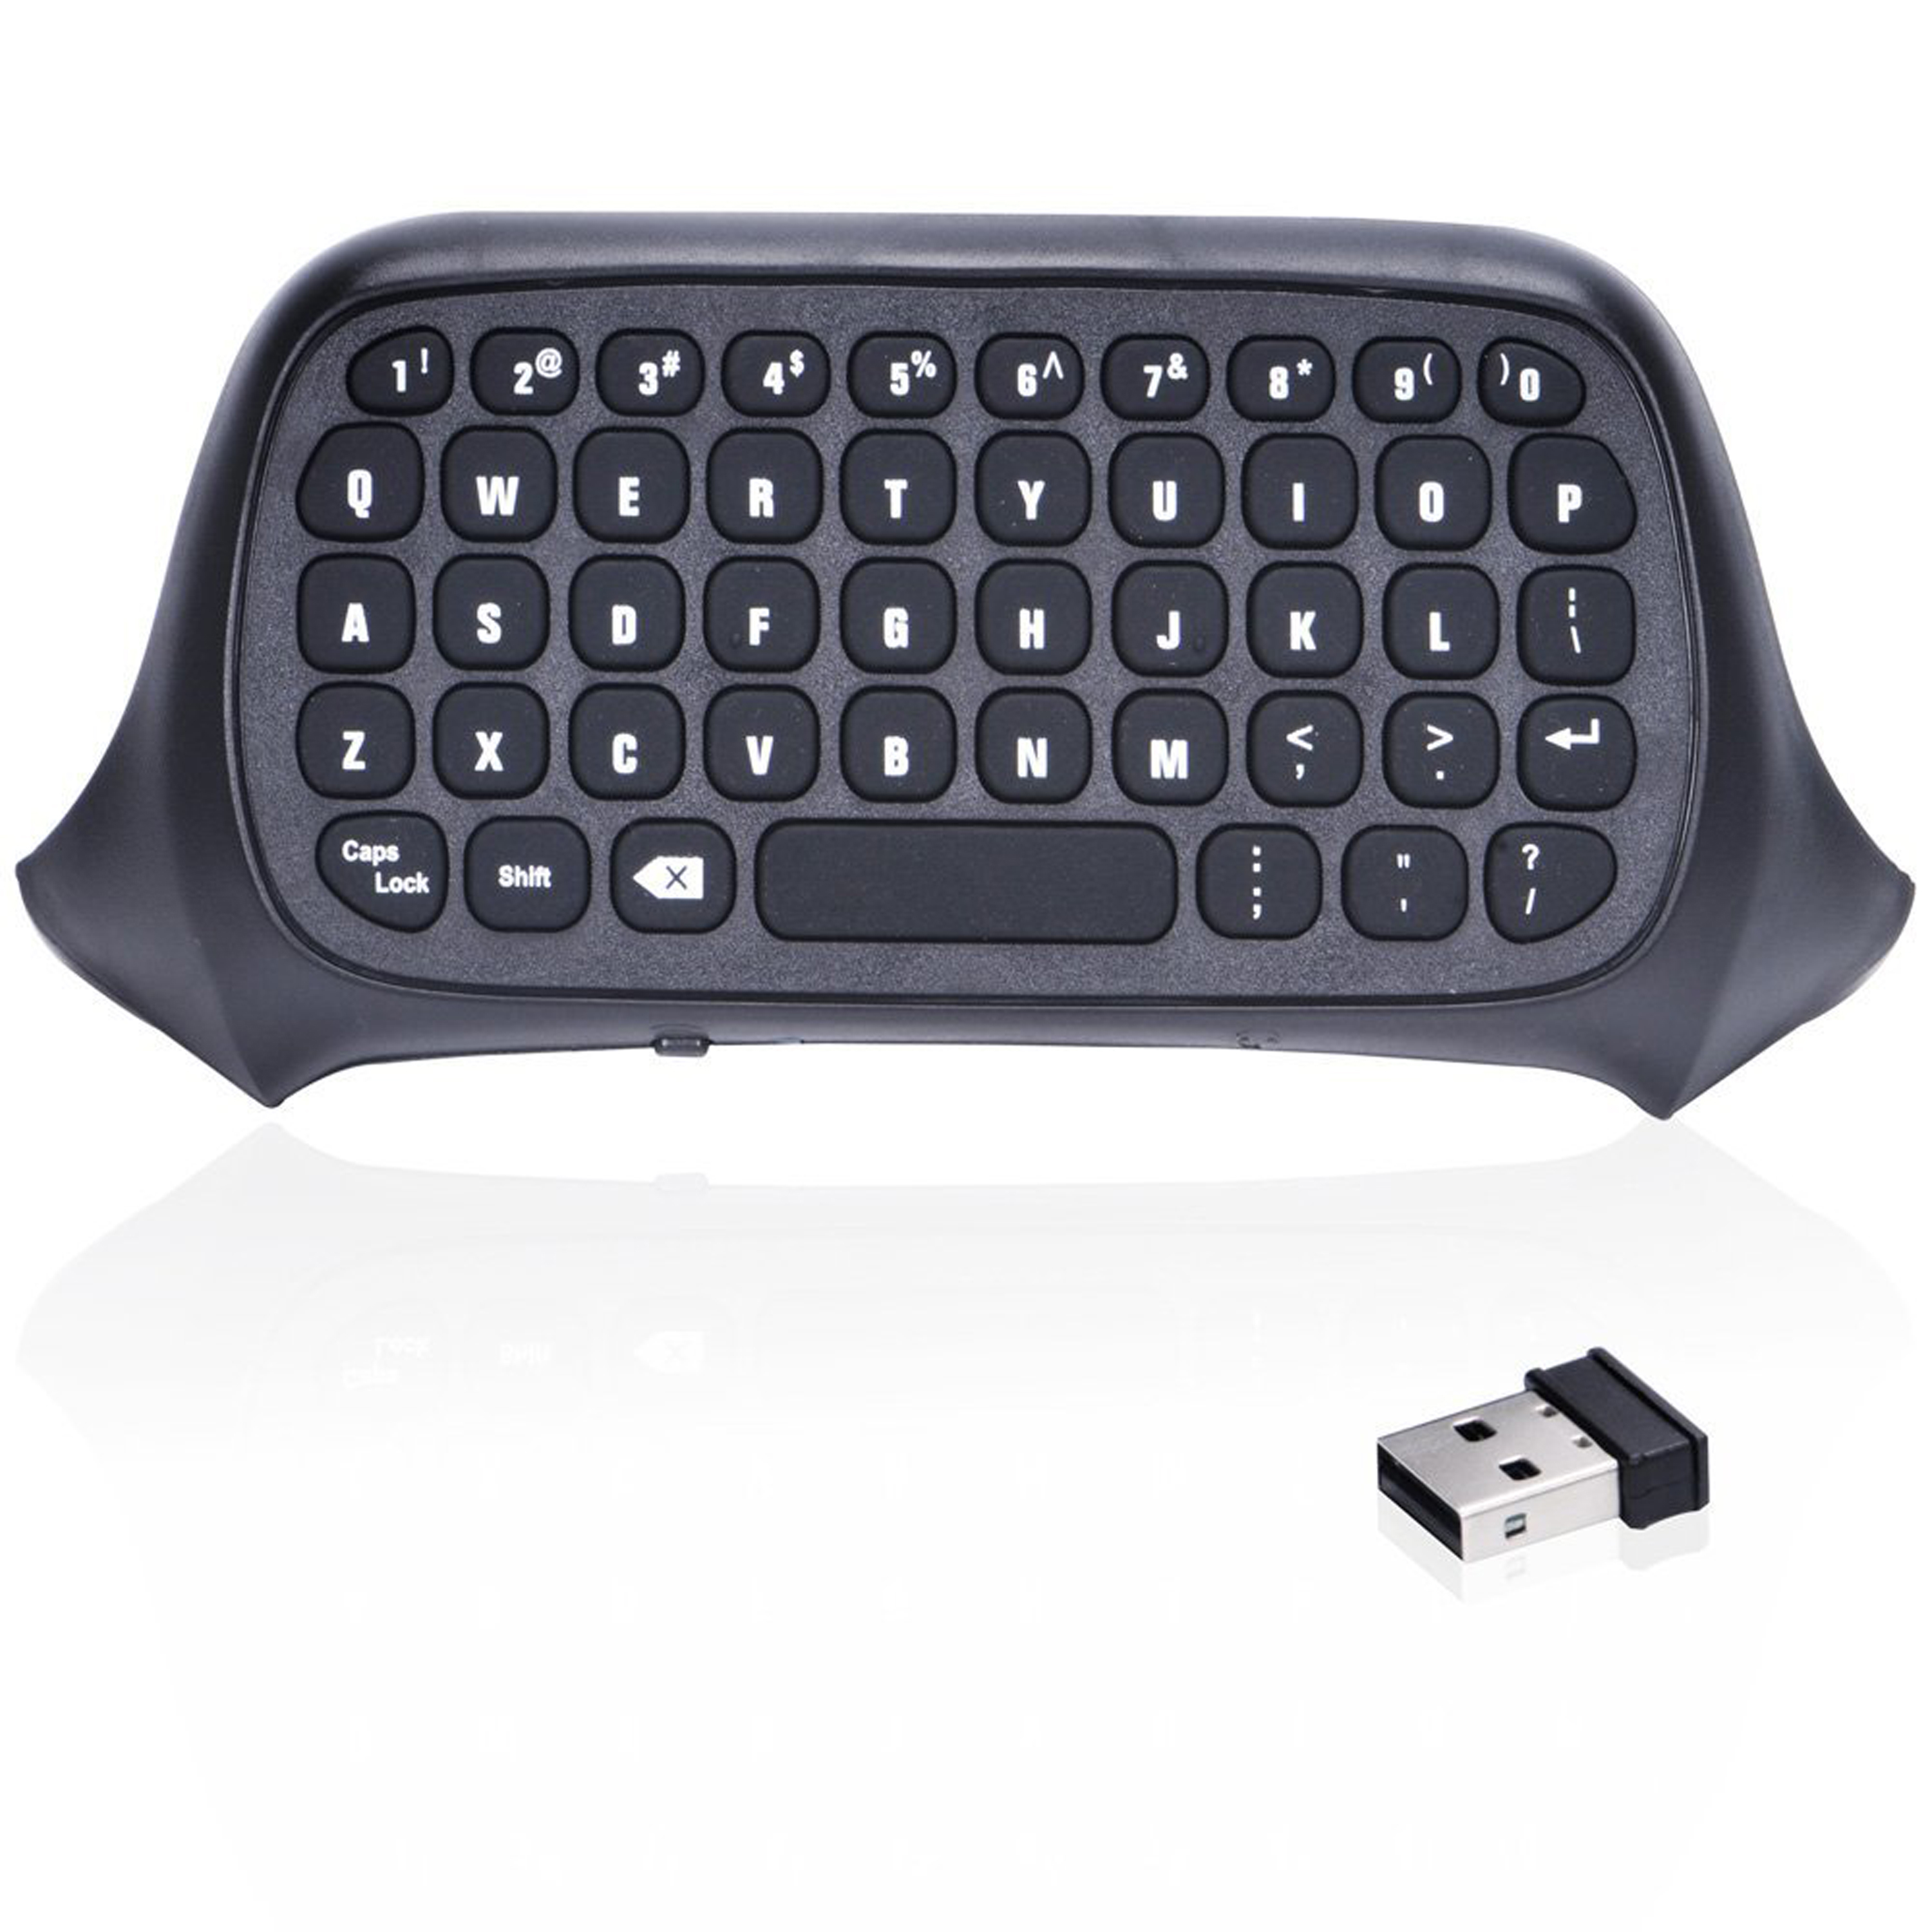 2.4G Mini Wireless Chatpad Message Keyboard for Xbox One Controller-Black